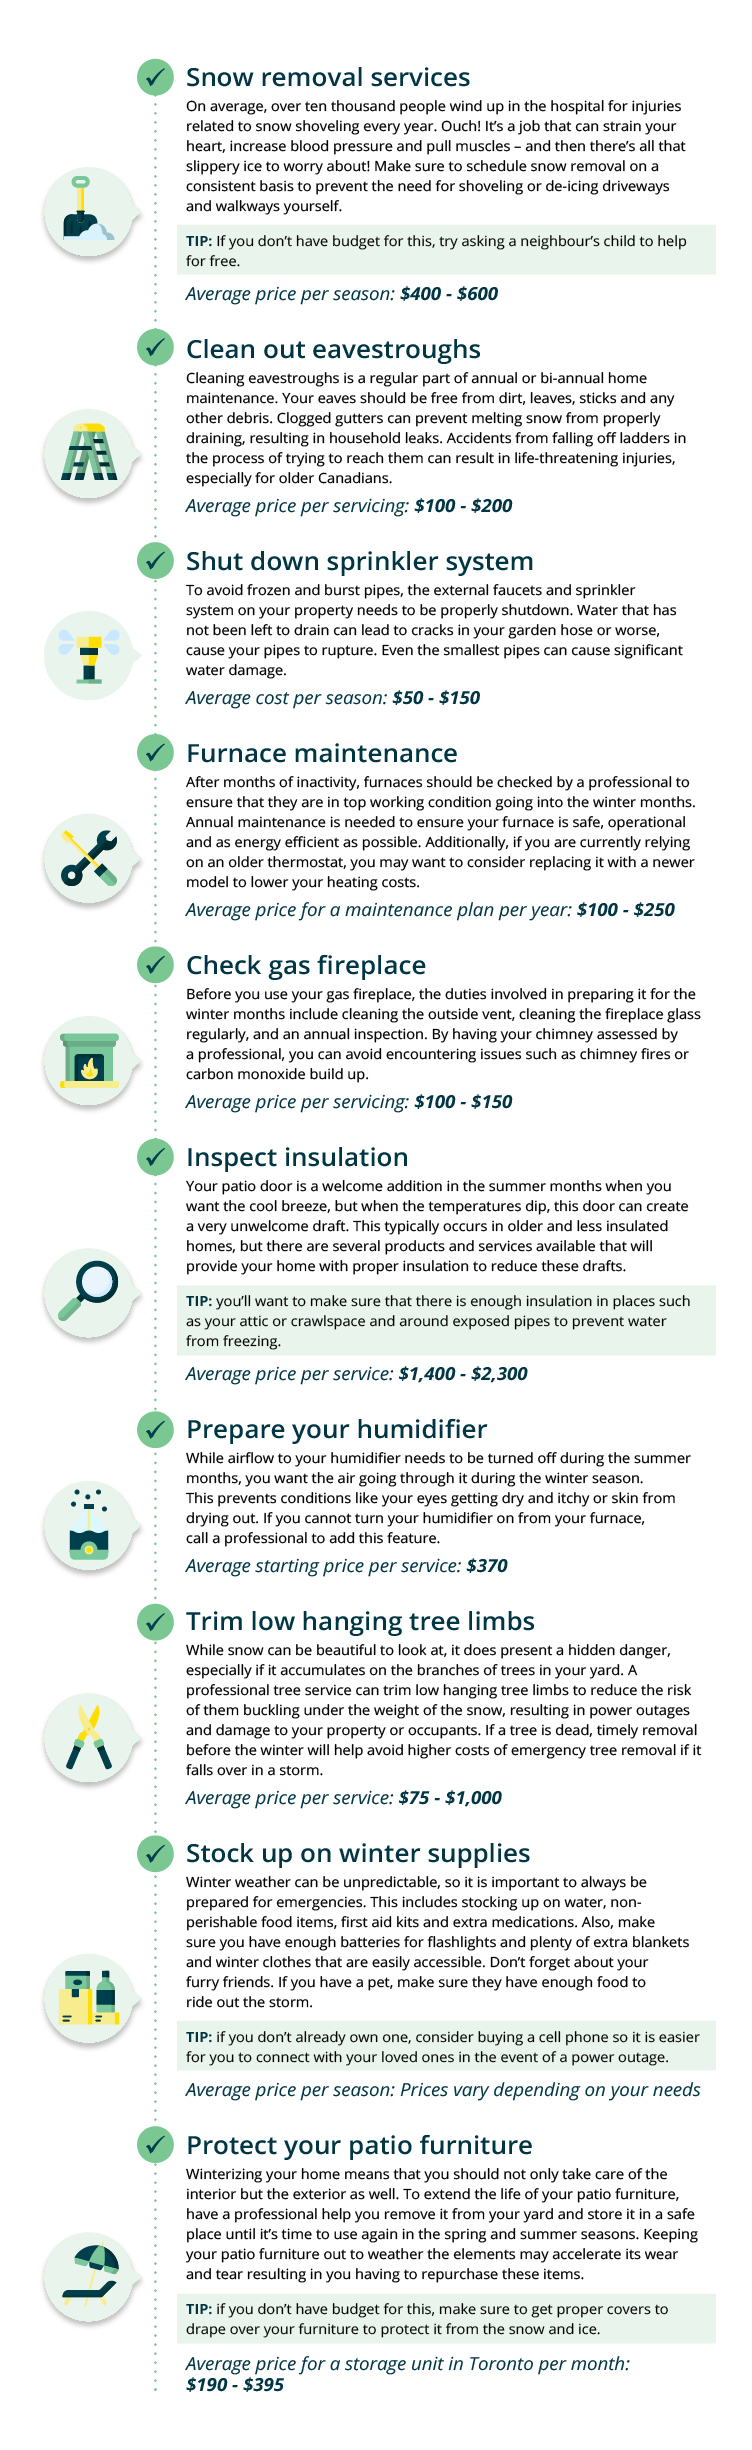 A winter checklist to remind Canadian homeowners what to prepare for and the costs associated with the service